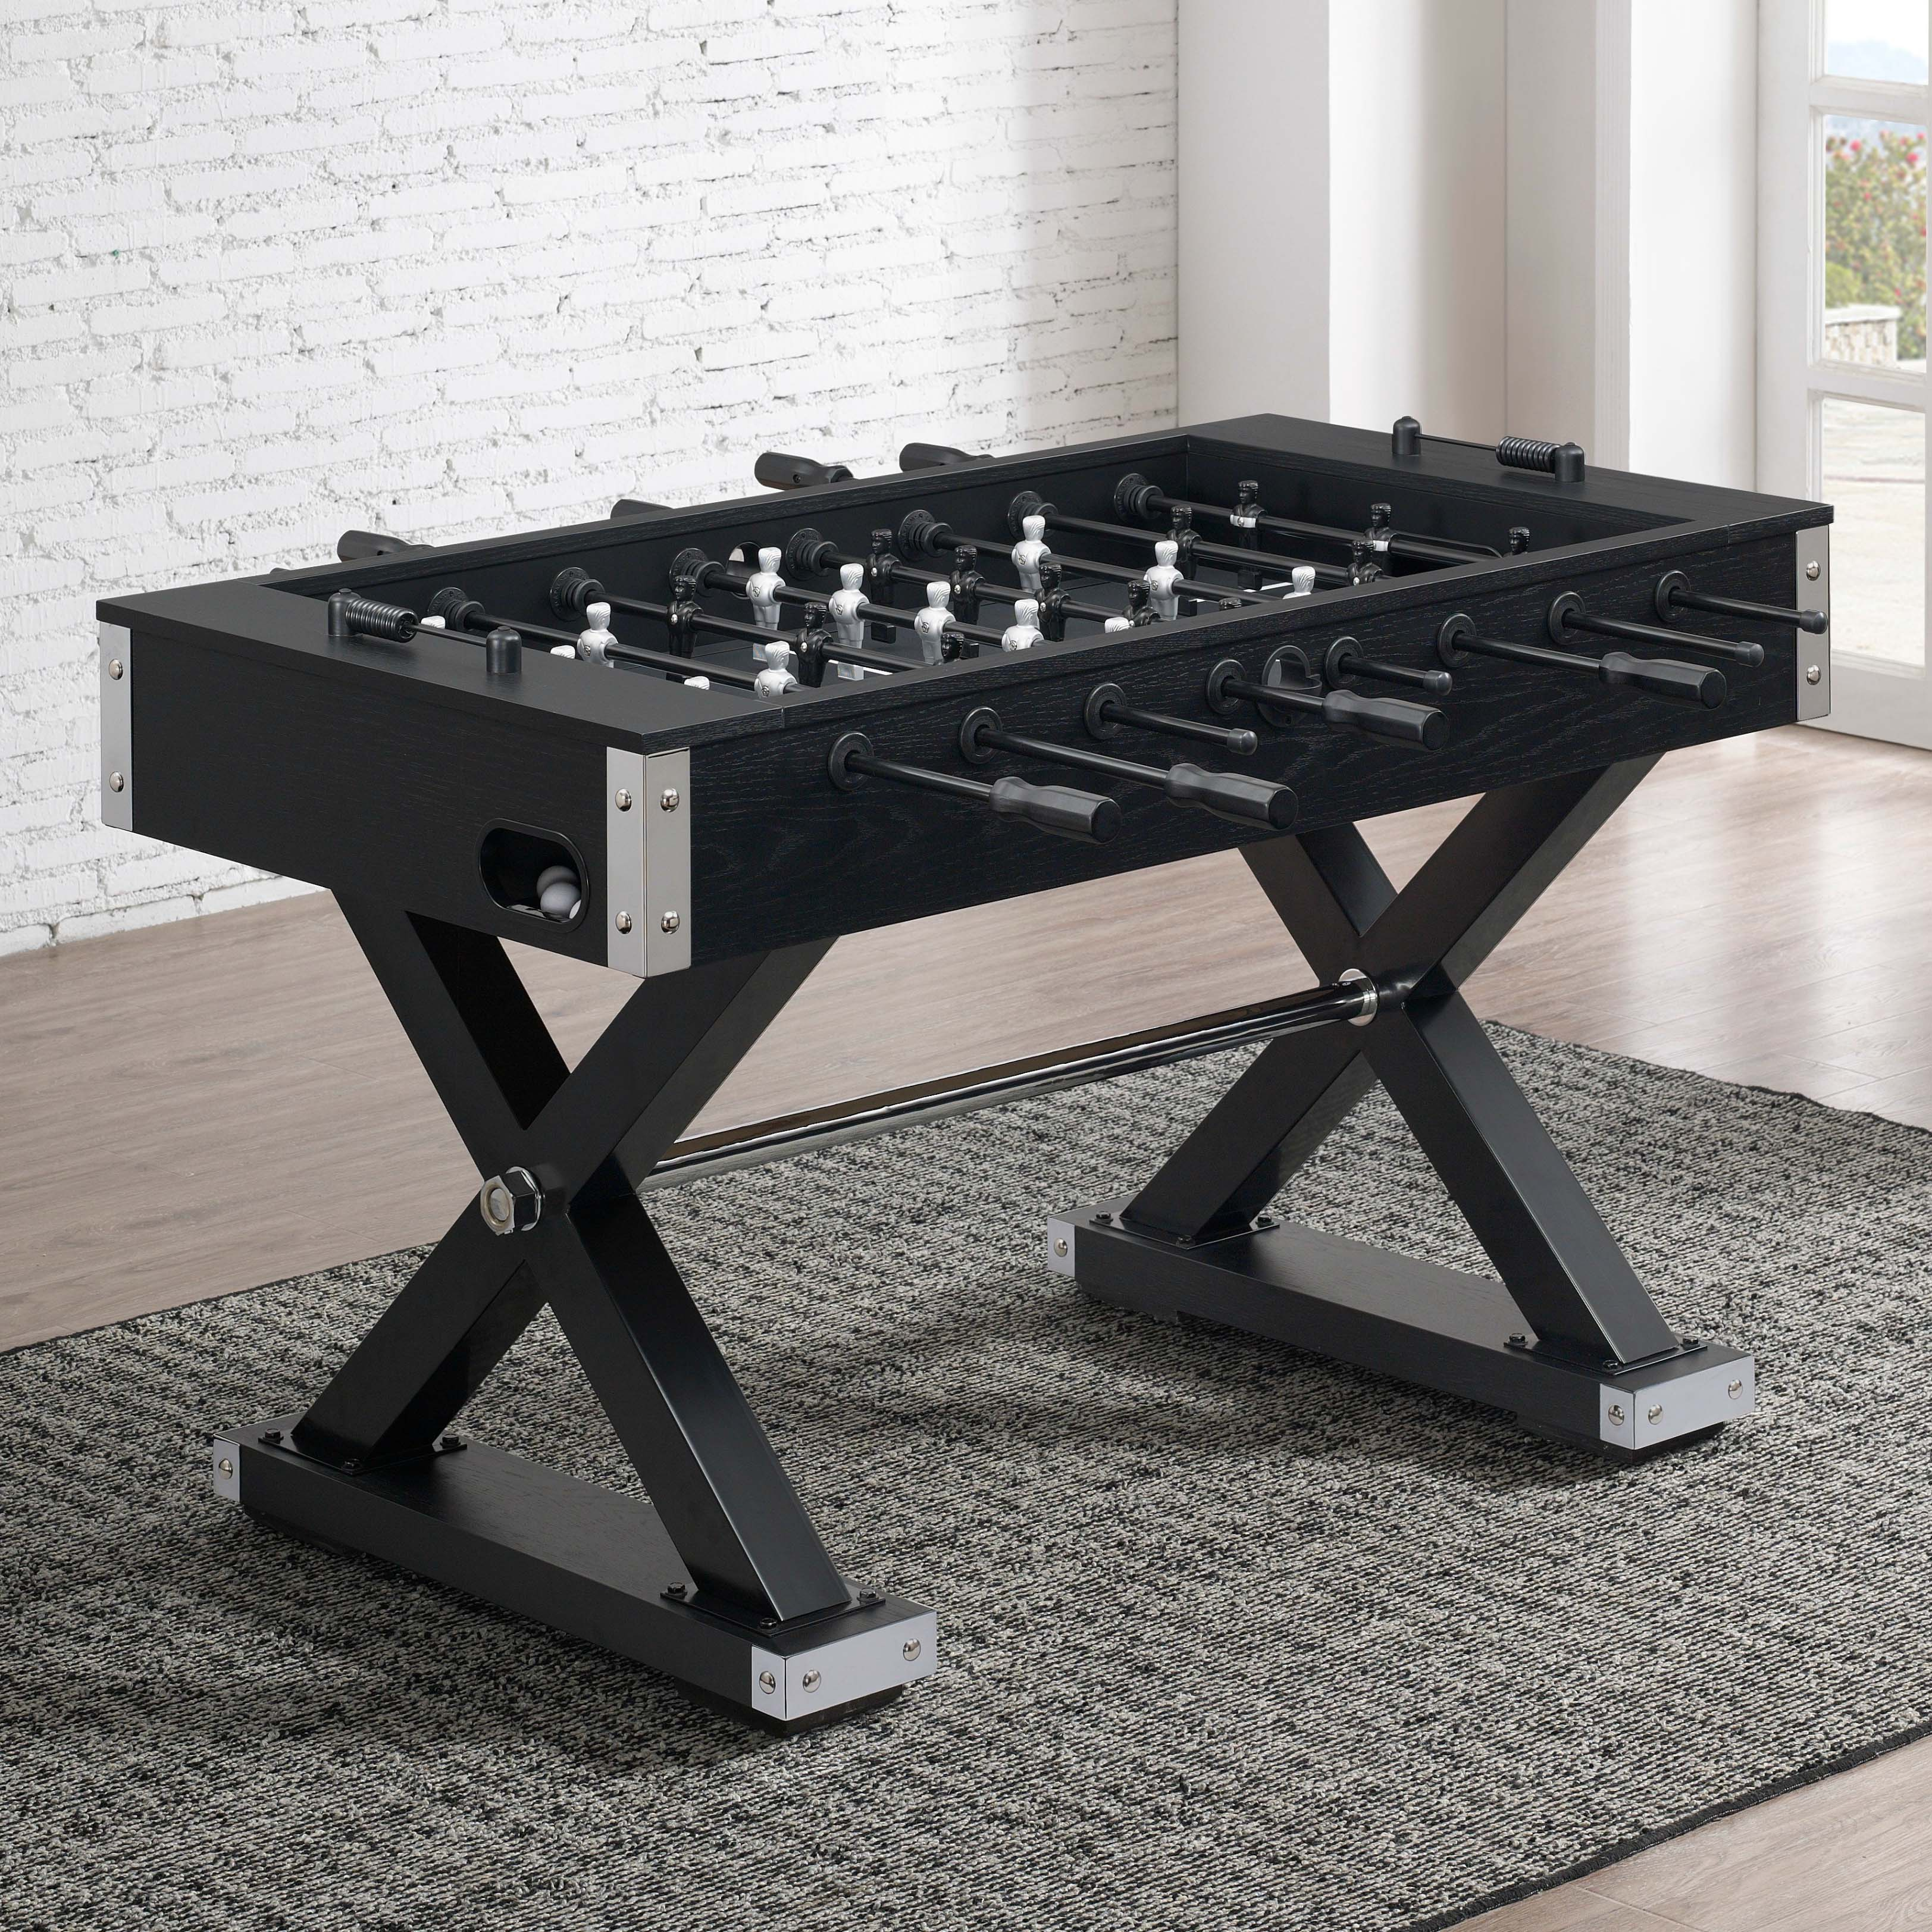 Element Foosball Table w Black and Chrome From American Heritage